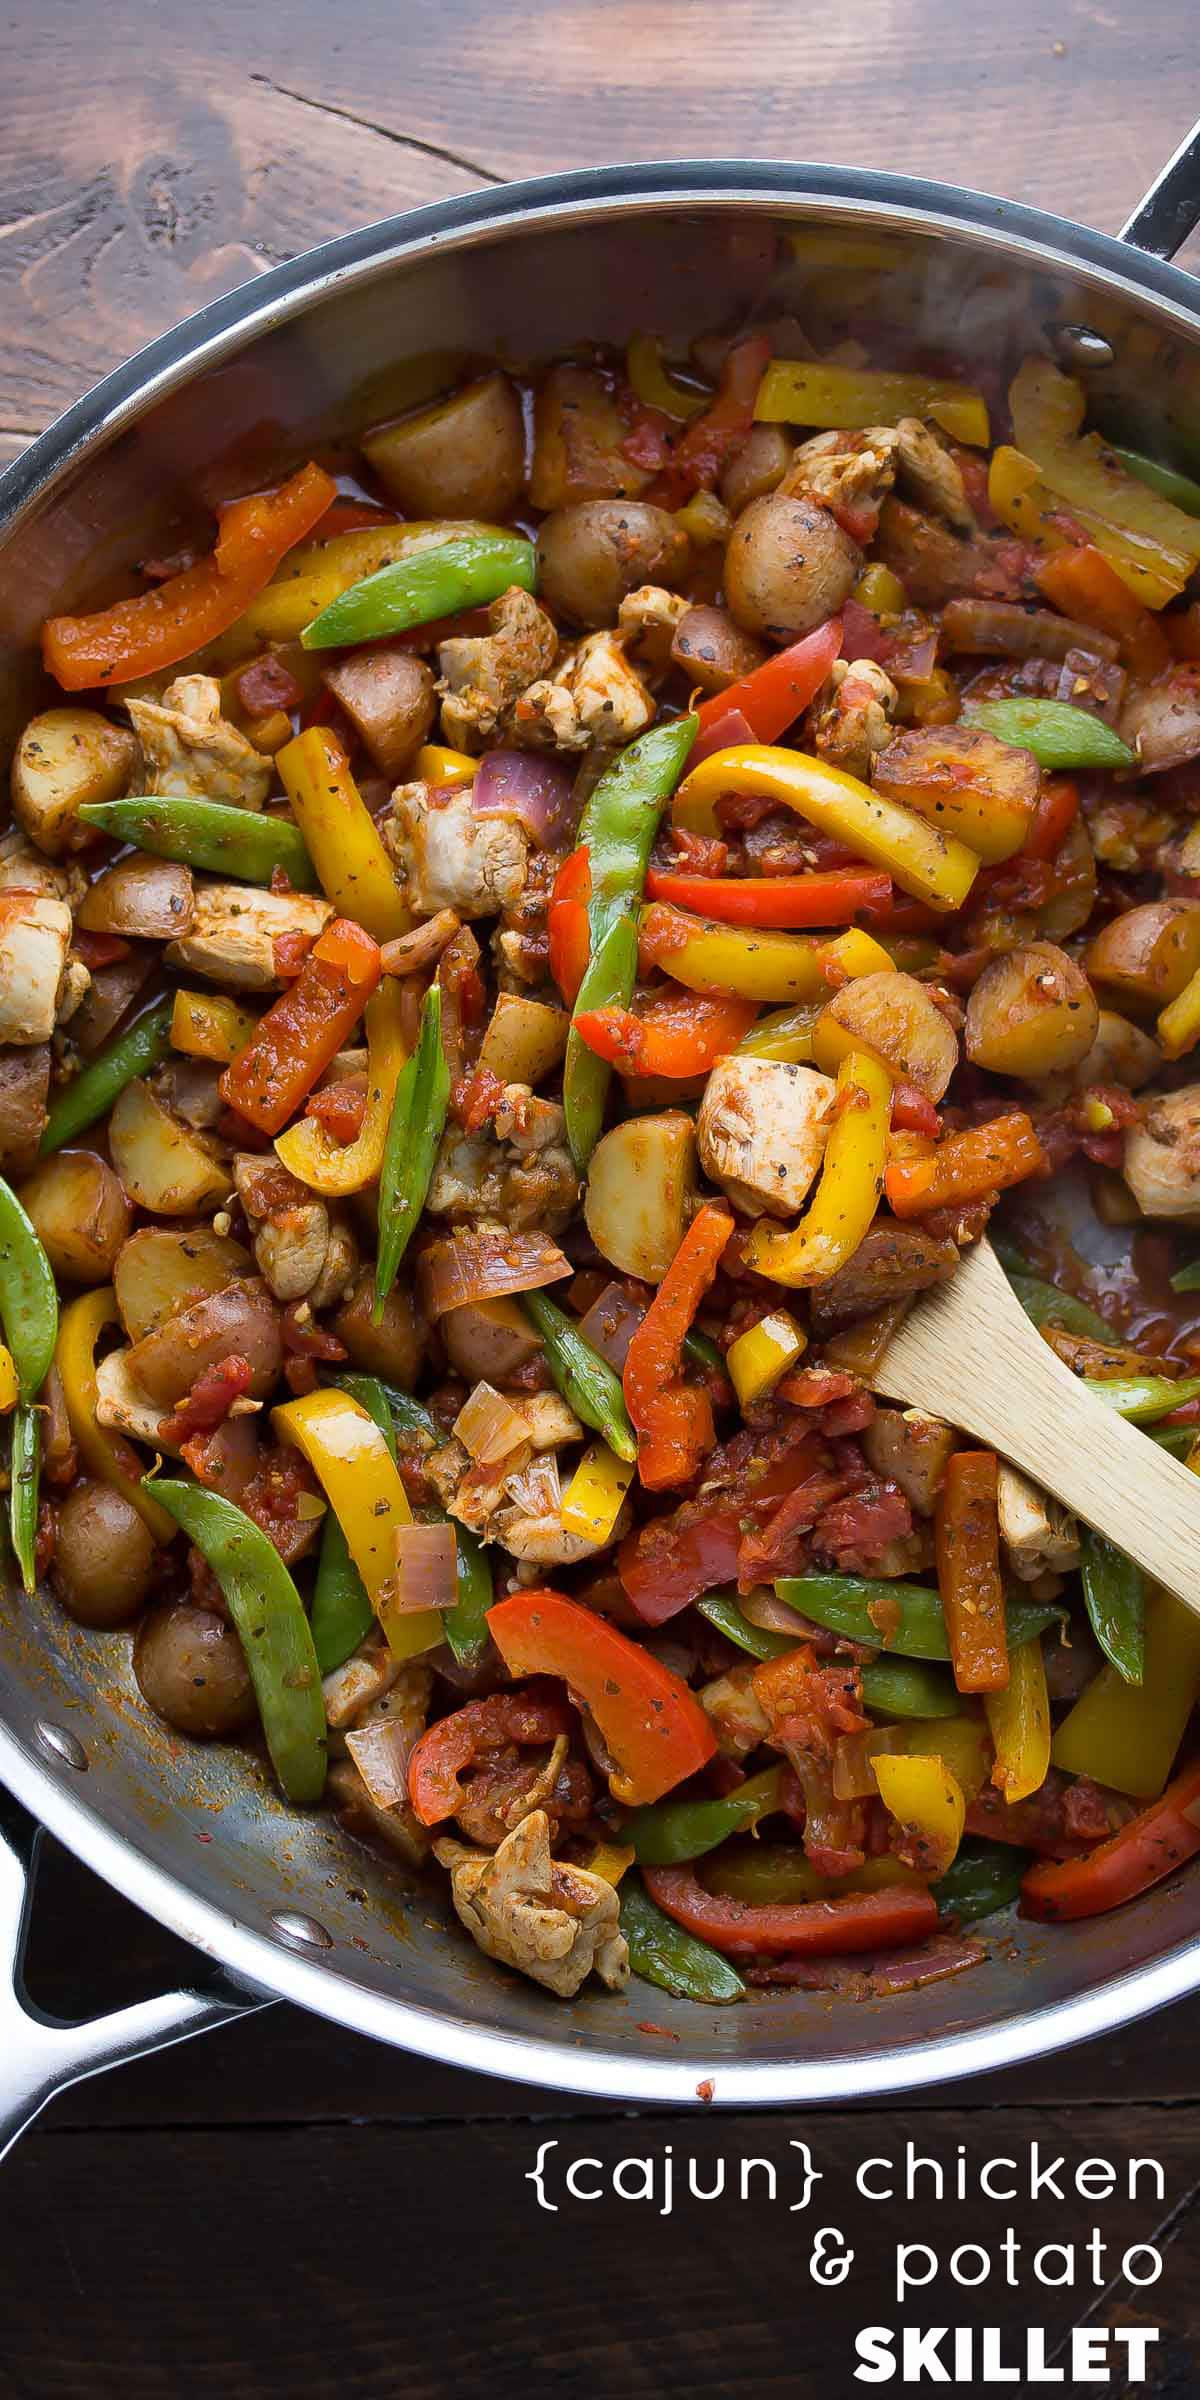 Skillet Dinners Recipes  Healthy Chicken Skillet with Cajun Potatoes and Veggies